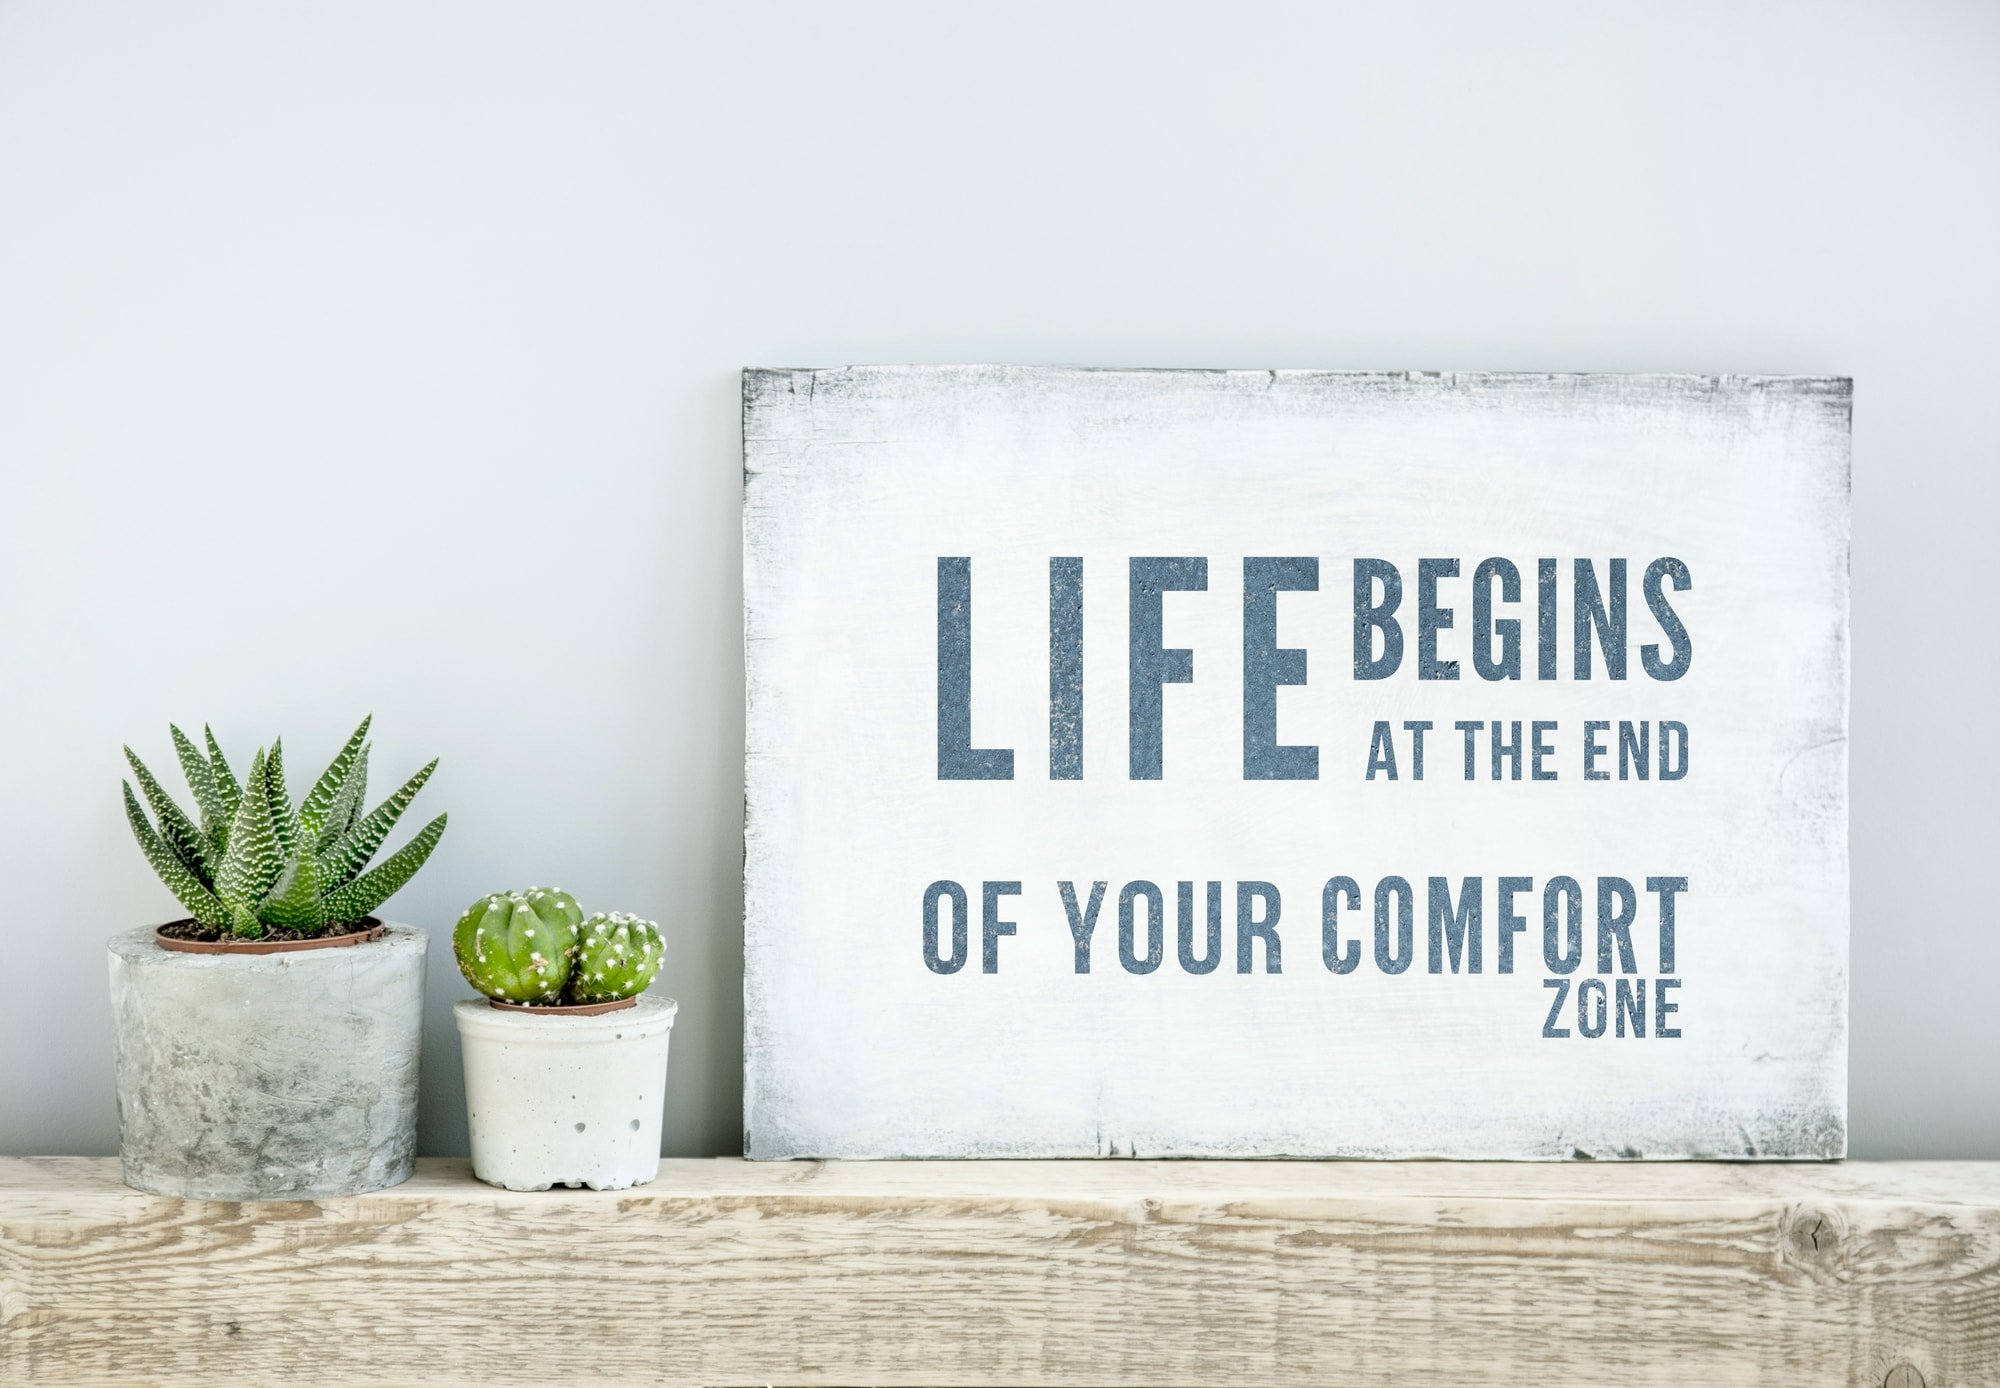 5 Steps to Succeed Outside Your Comfort Zone